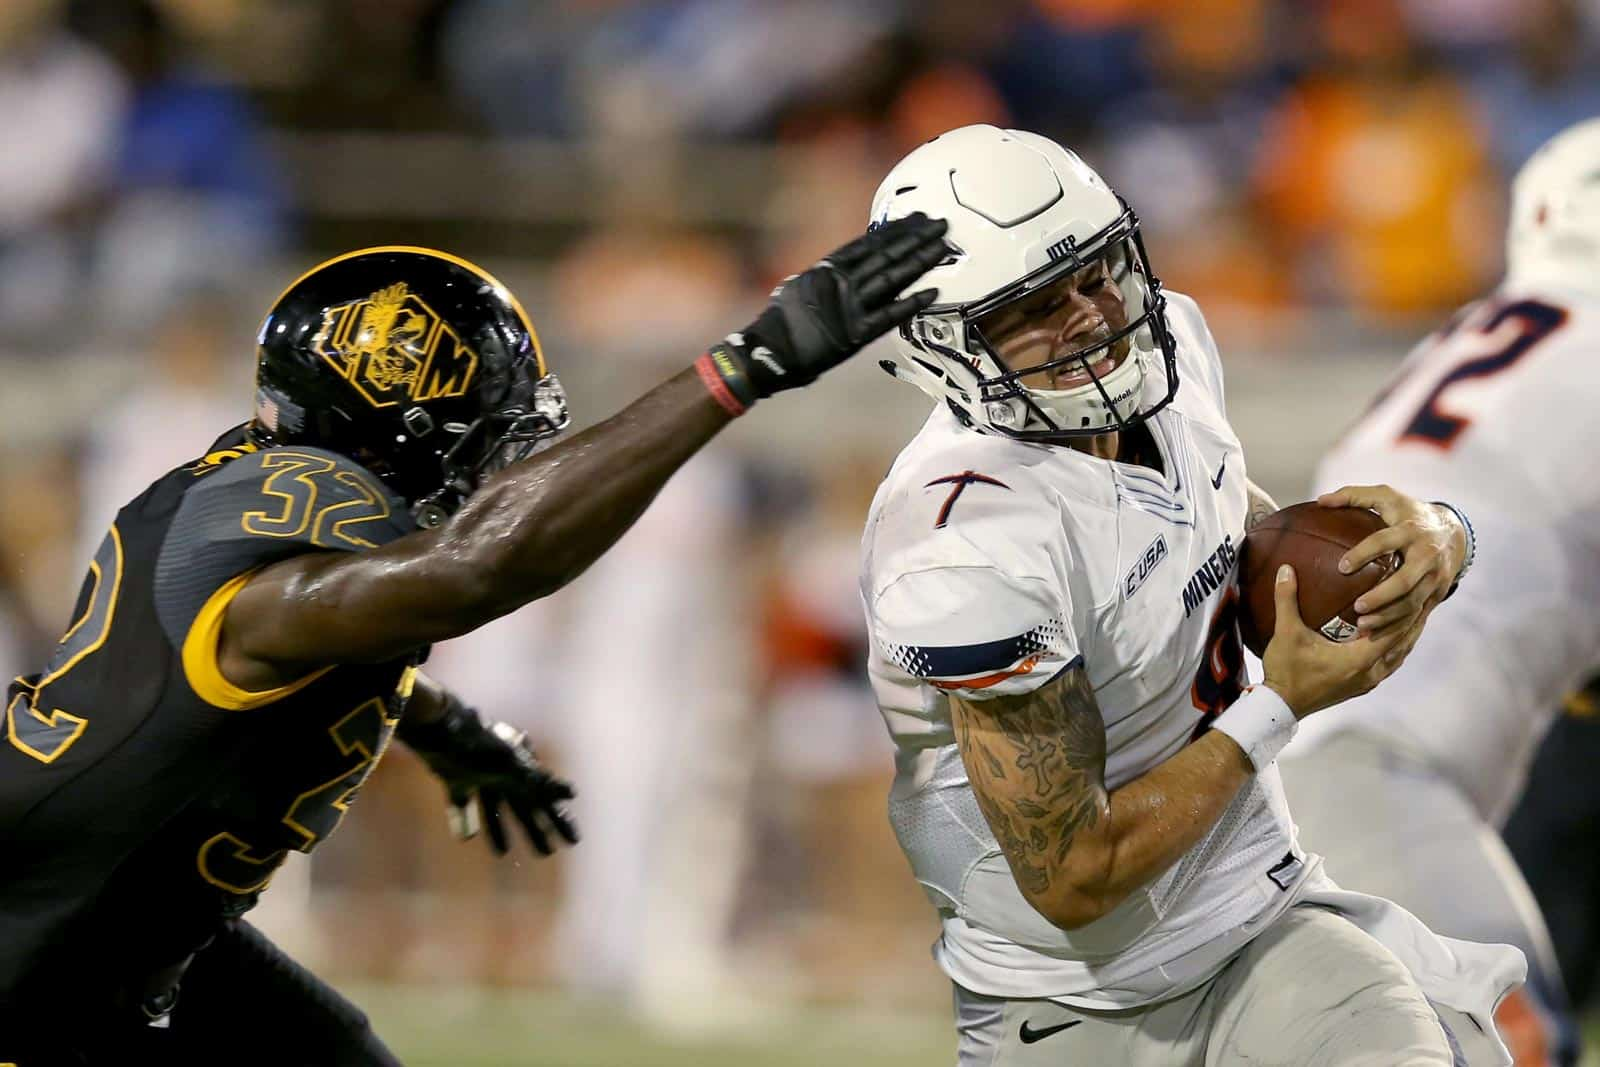 Southern Miss-UTEP